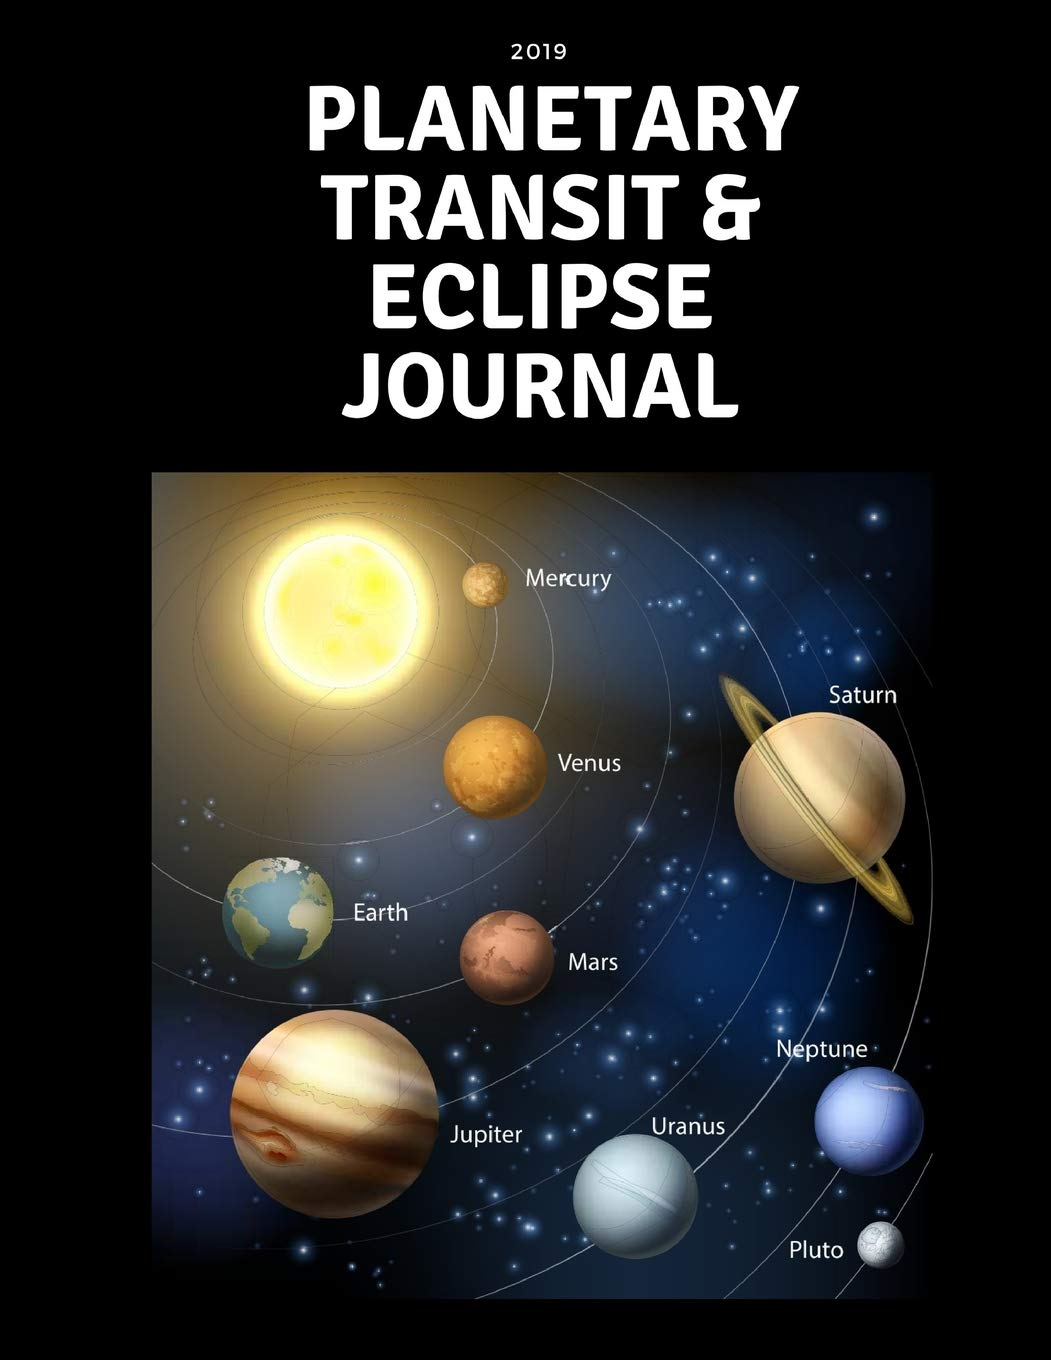 2019 Planetary Transit & Eclipse Journal: A Daily Planner That